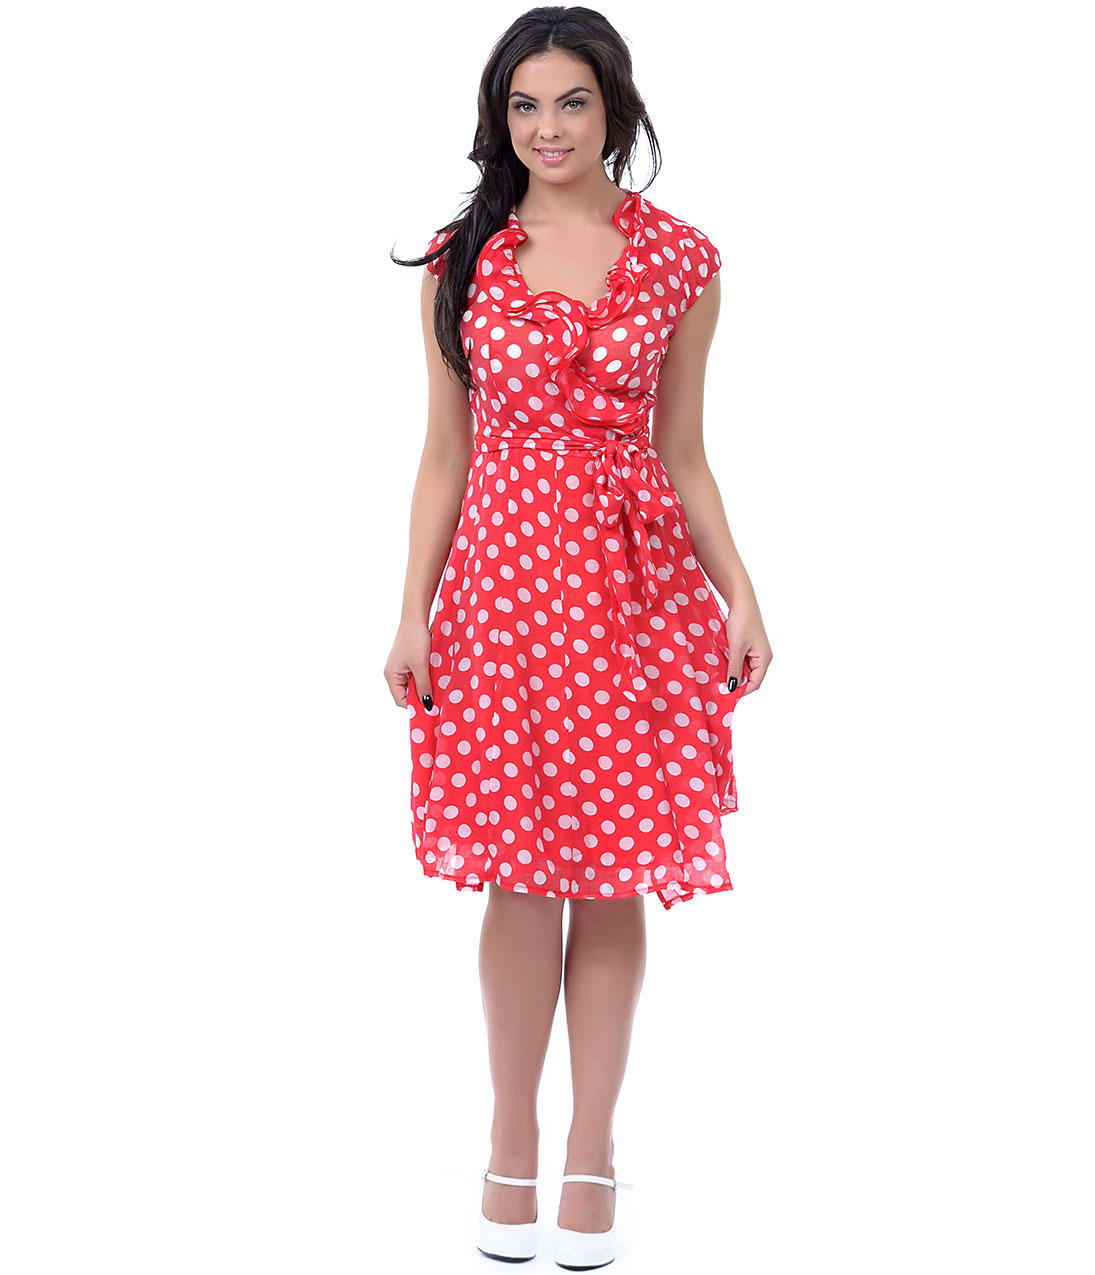 Red Amp White Polka Dot Ruffle Wrap Dress From Unique Vintage